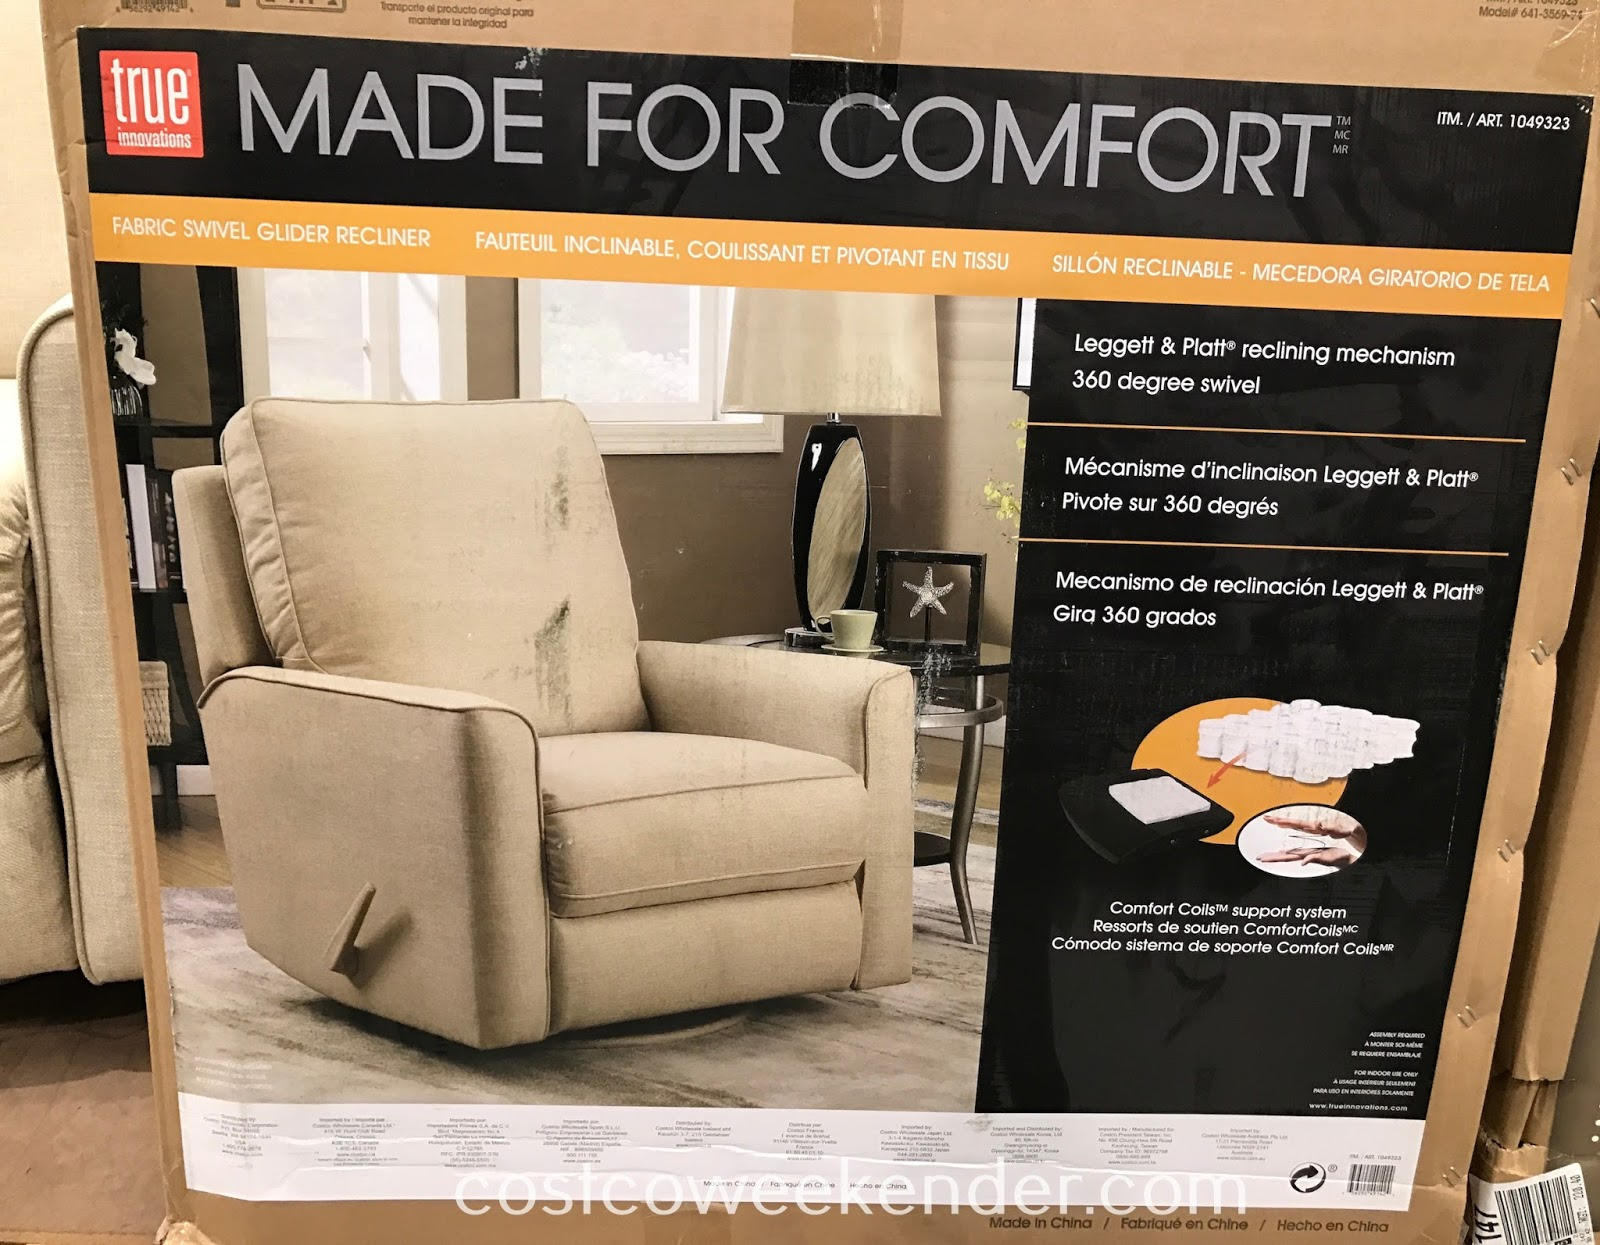 True Innovations Fabric Swivel Glider Recliner Chair | Costco Weekender Throughout Decker Ii Fabric Swivel Rocker Recliners (Image 24 of 25)